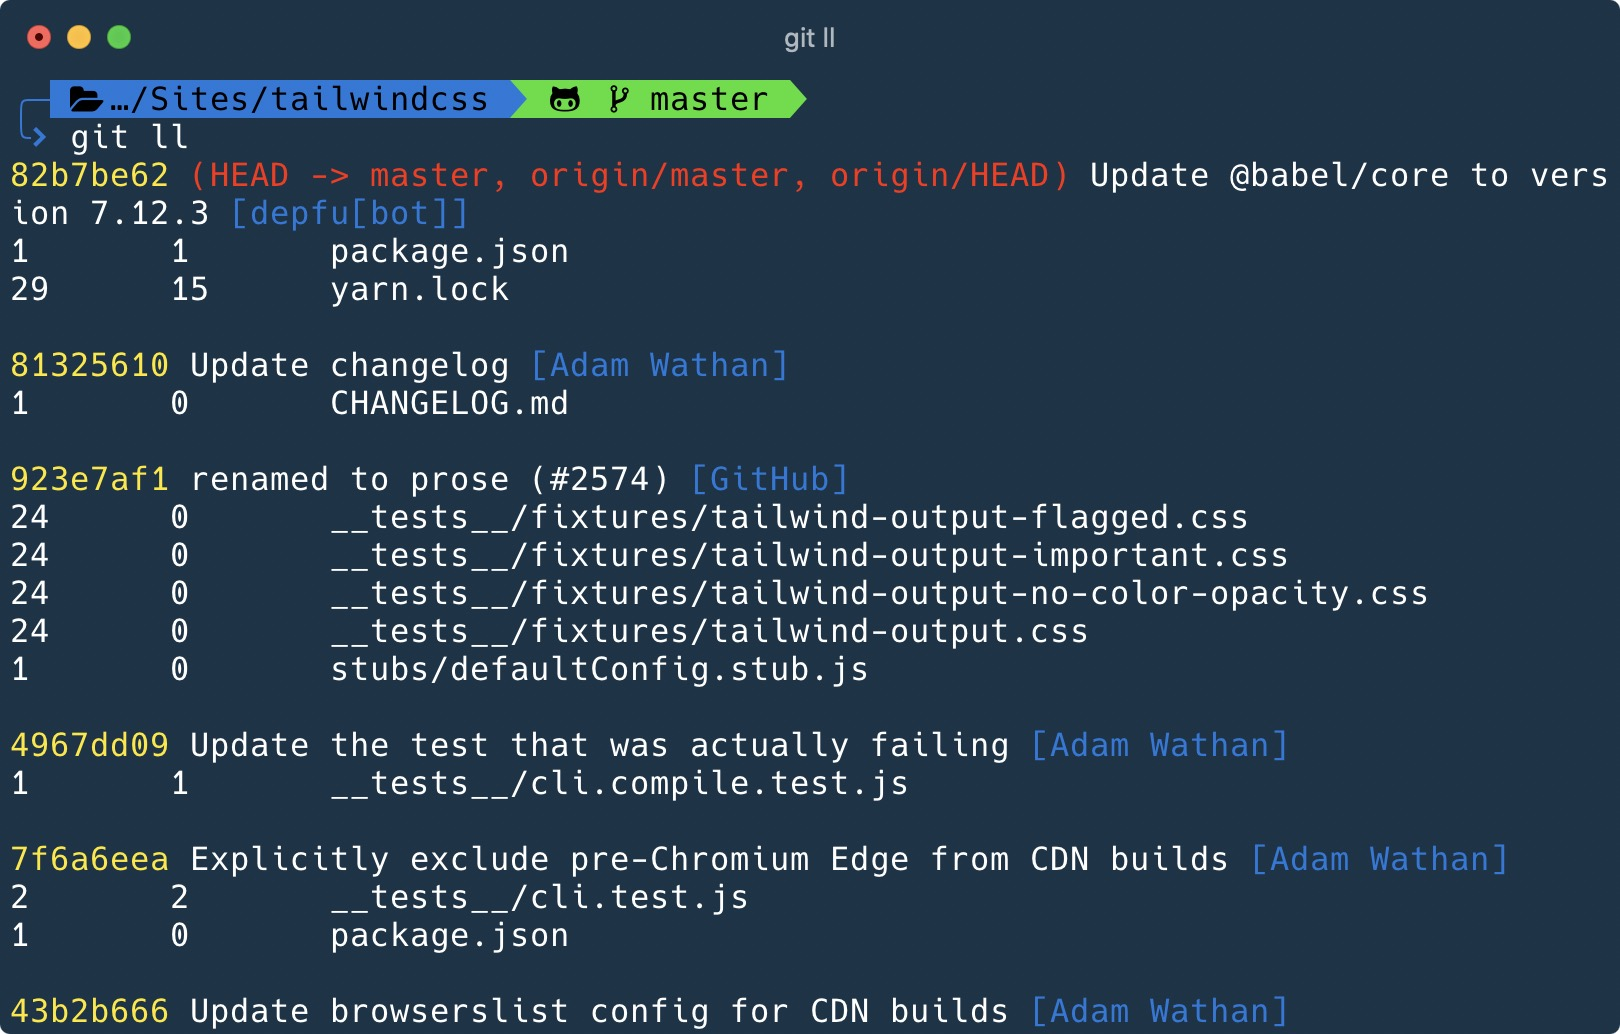 git ll example in the Tailwind CSS repository